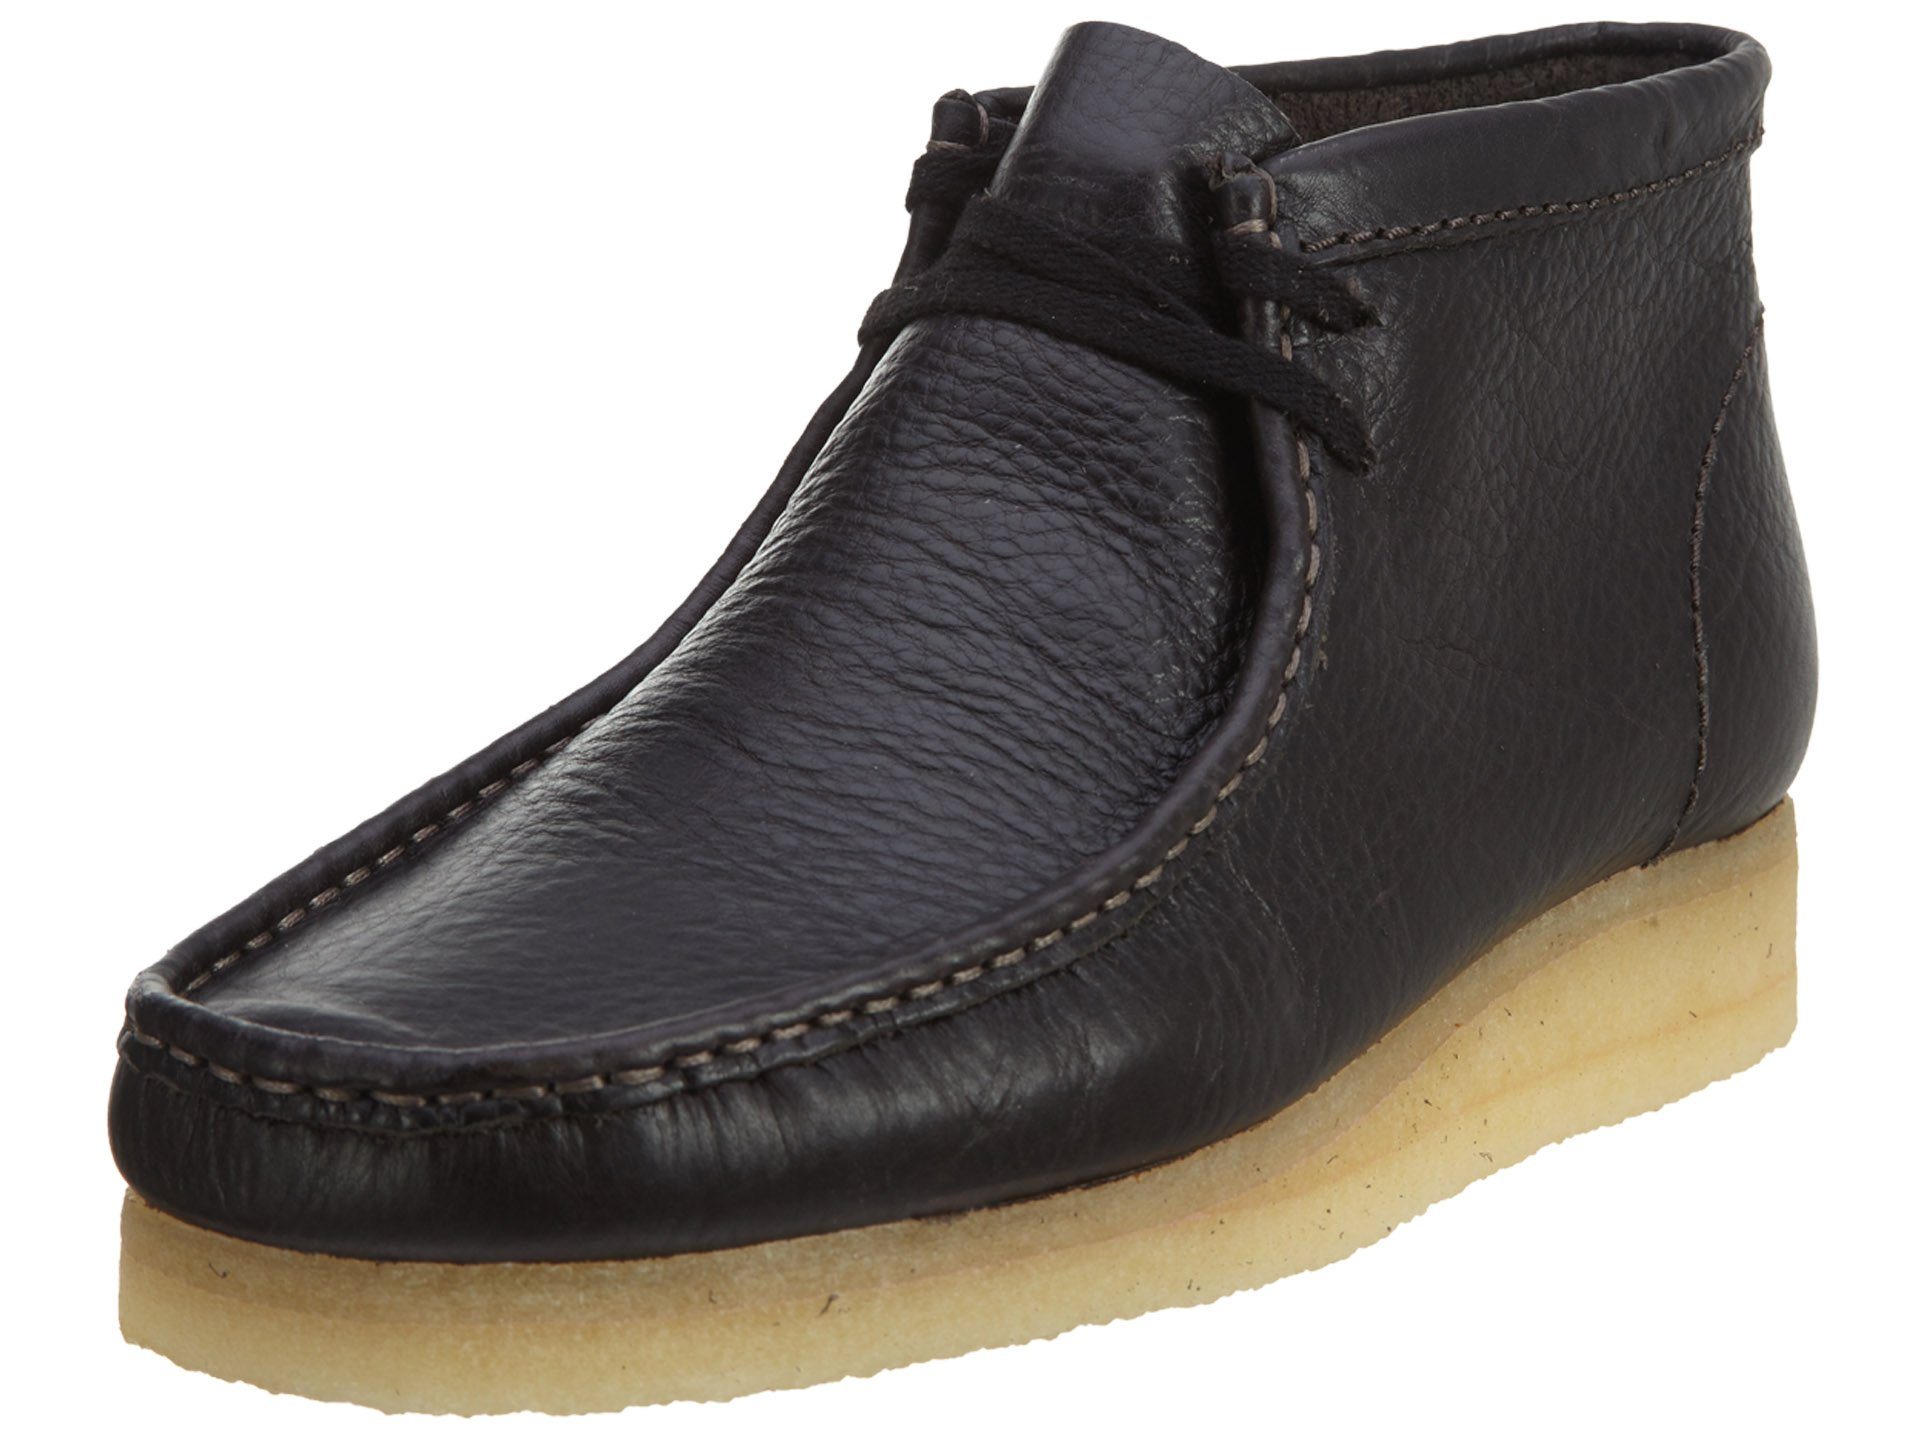 Clarks Men's Wallabee,Charcoal Leather,US 8 M